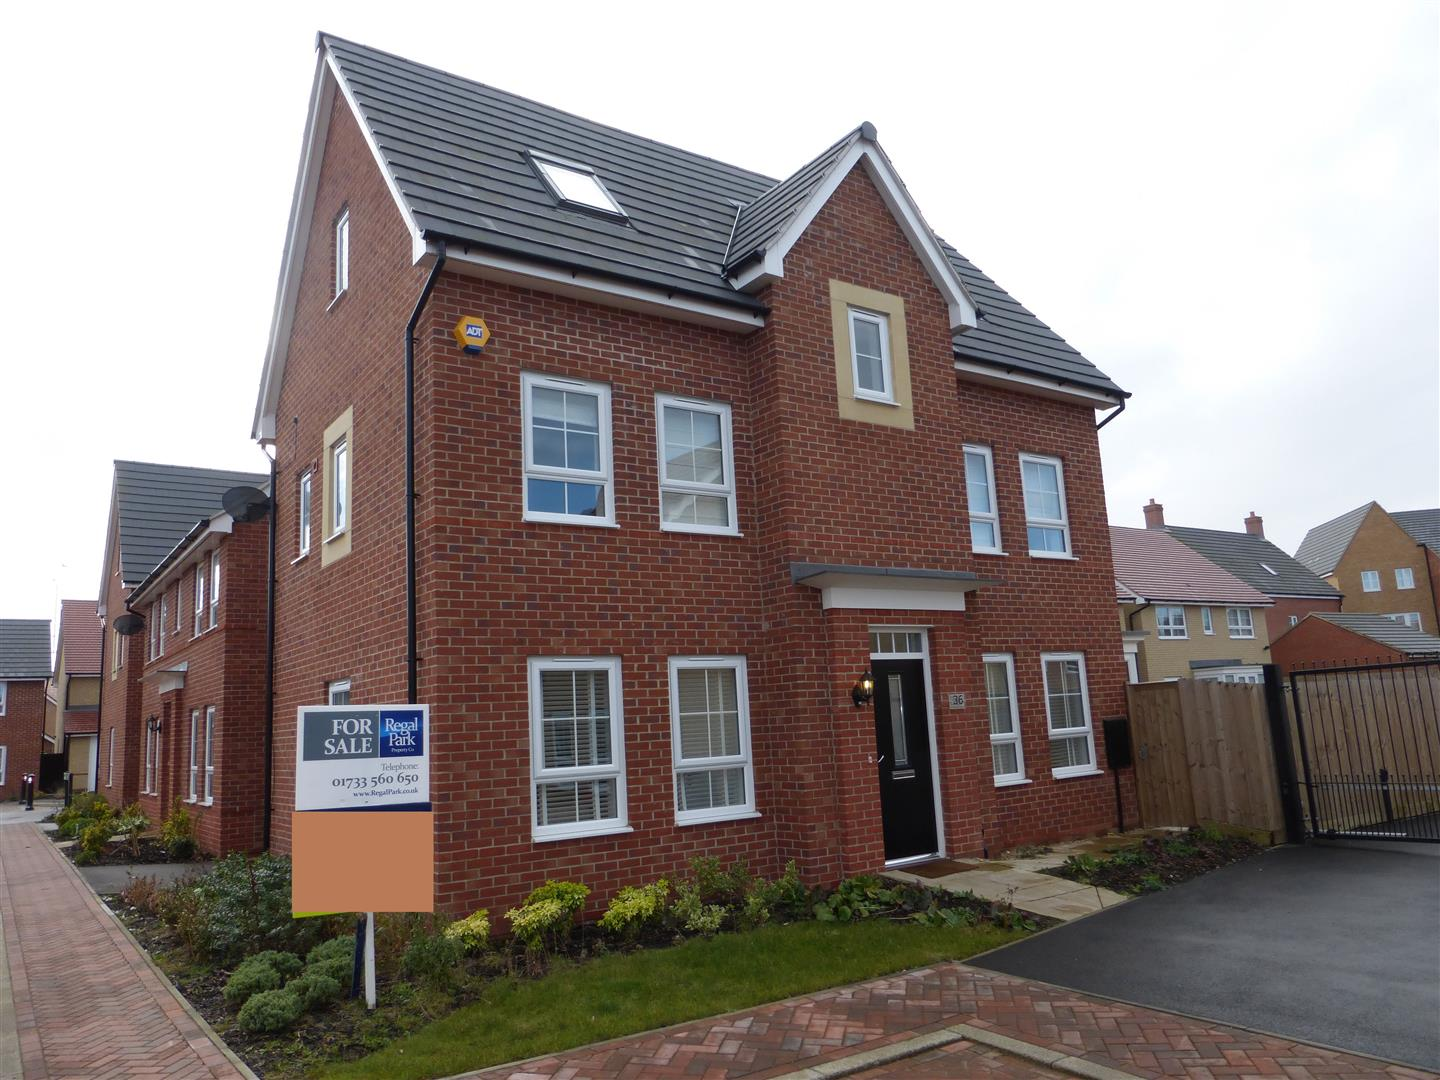 4 Bedroom Property For Sale In Mid Water Crescent Hampton Vale Peterborough Pe7 Regal Park